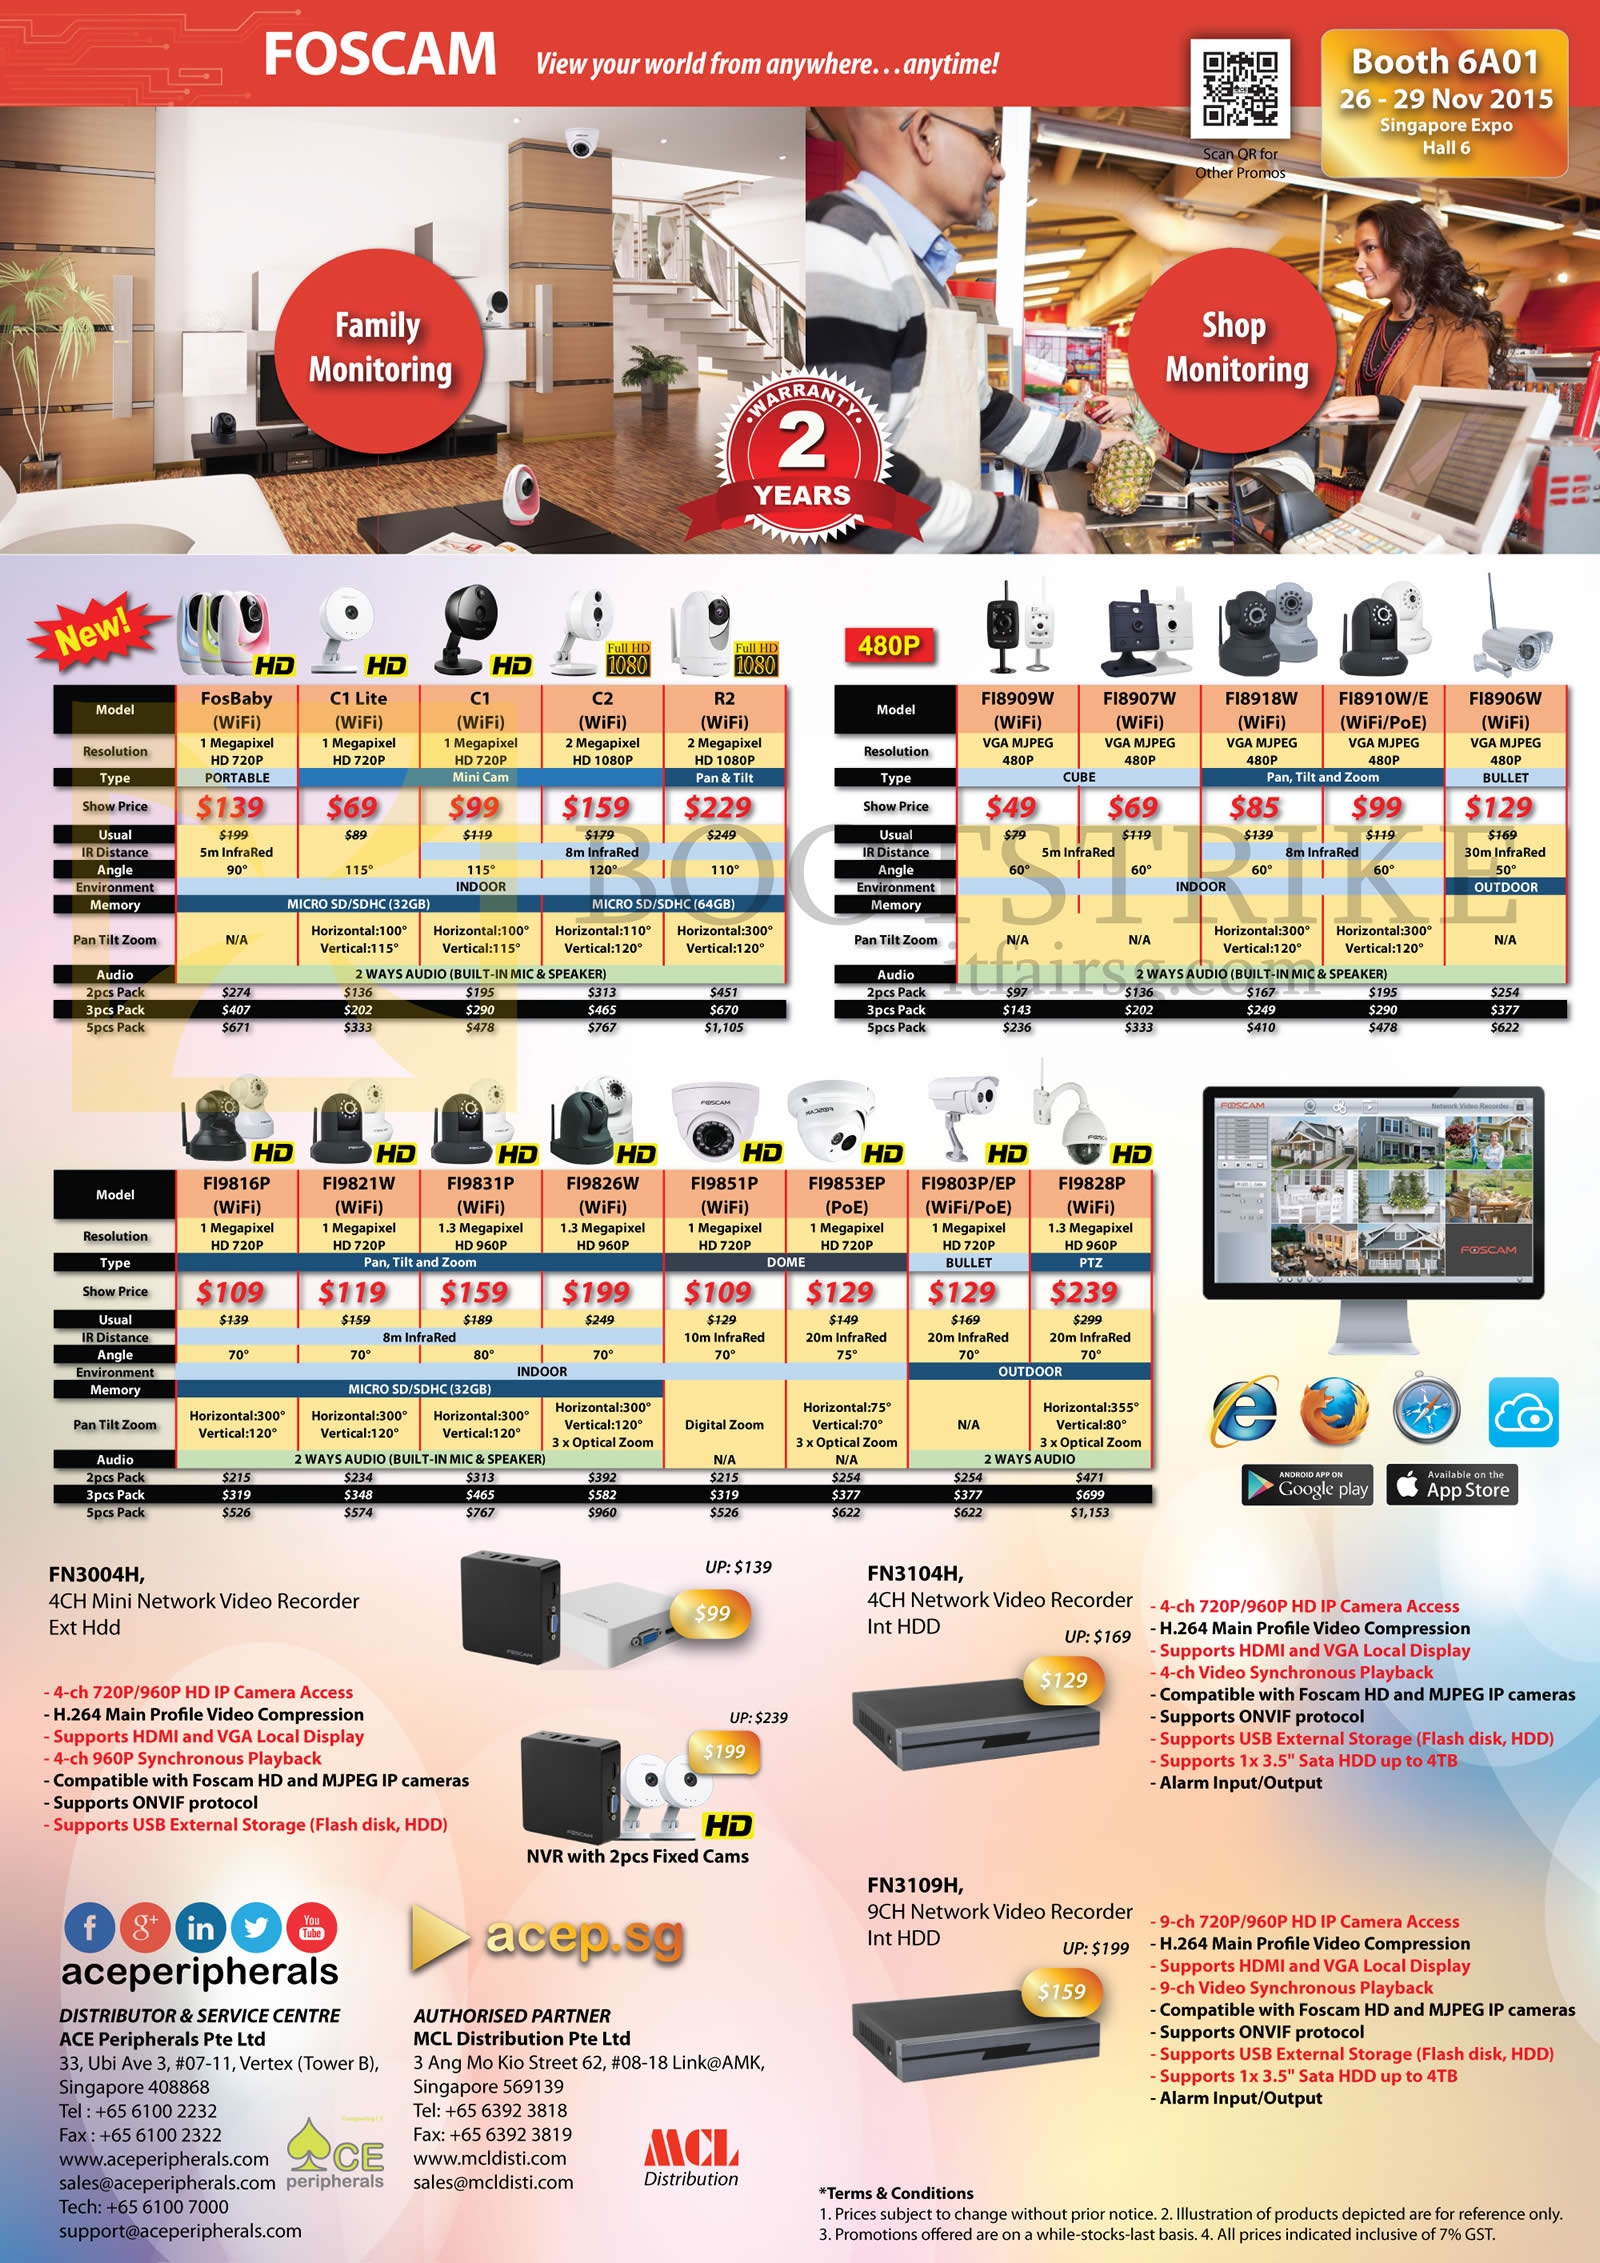 SITEX 2015 price list image brochure of Ace Peripherals Cameras Family Monitoring, Shop Monitoring Foscam Stand Alone Network IP POE WiFi Camera Home SME Corp Large Enterprise